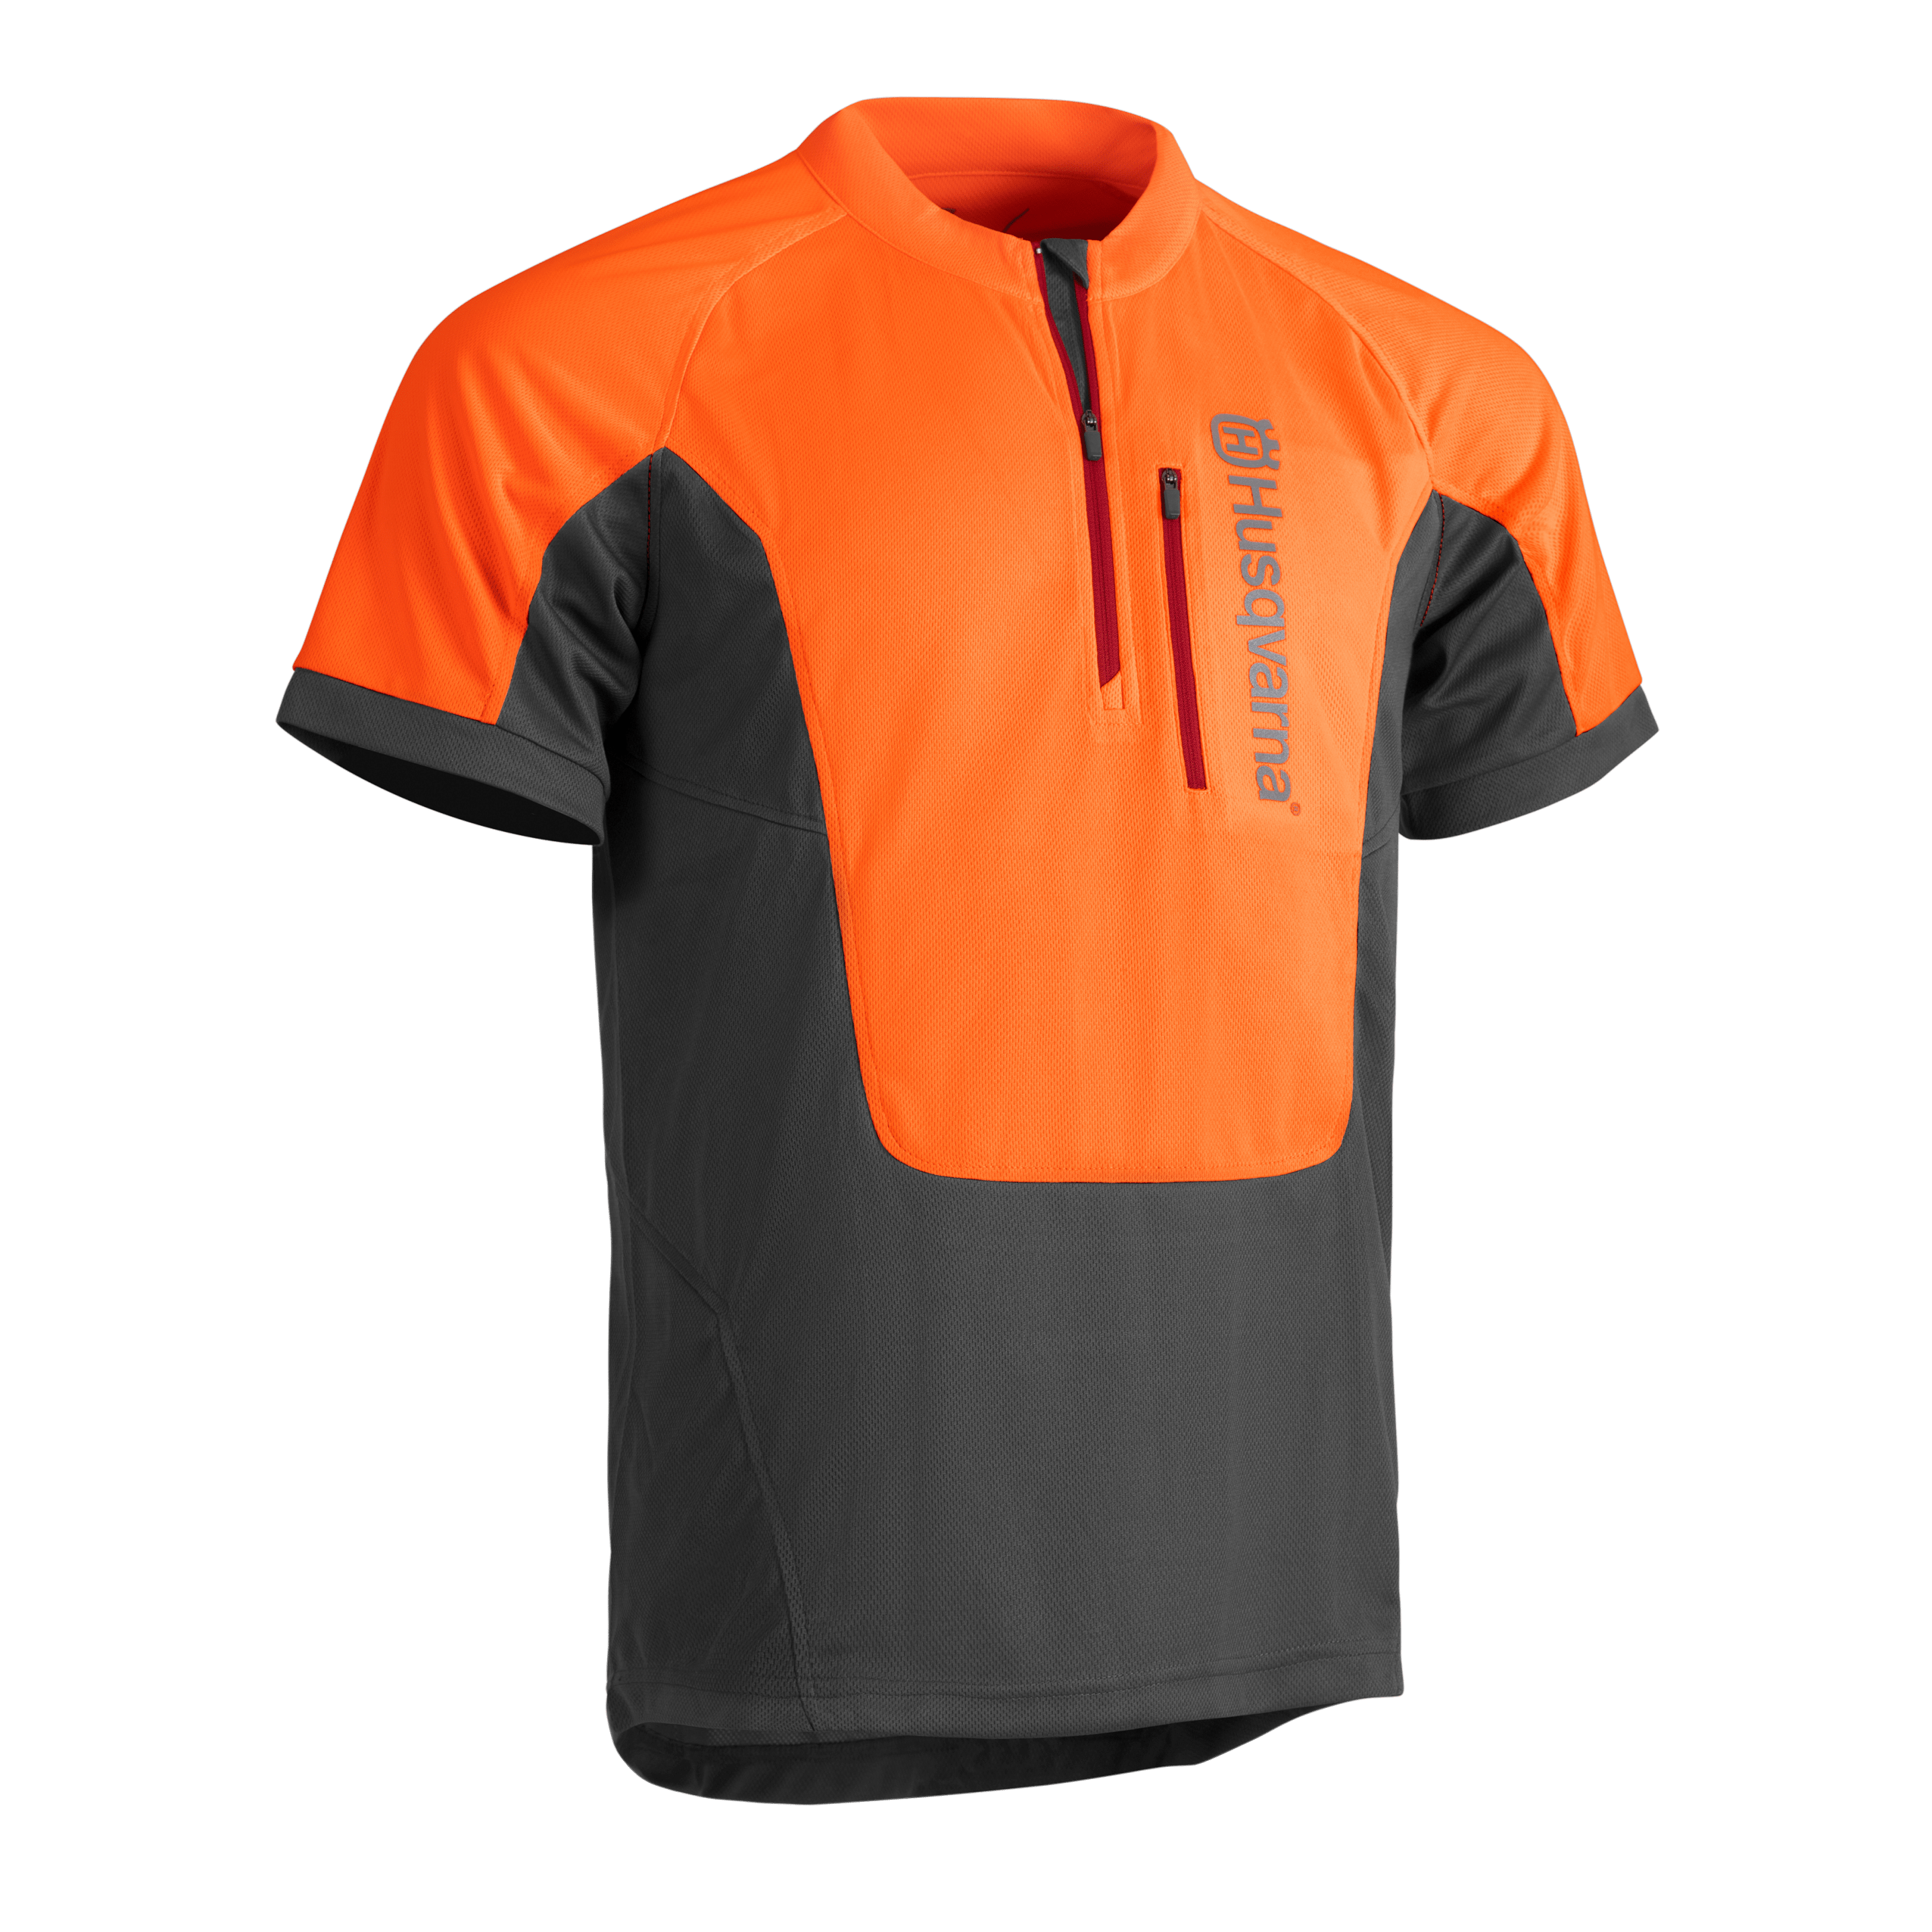 HUSQVARNA Work T-Shirt Short Sleeved - V-Pro Power Equipment